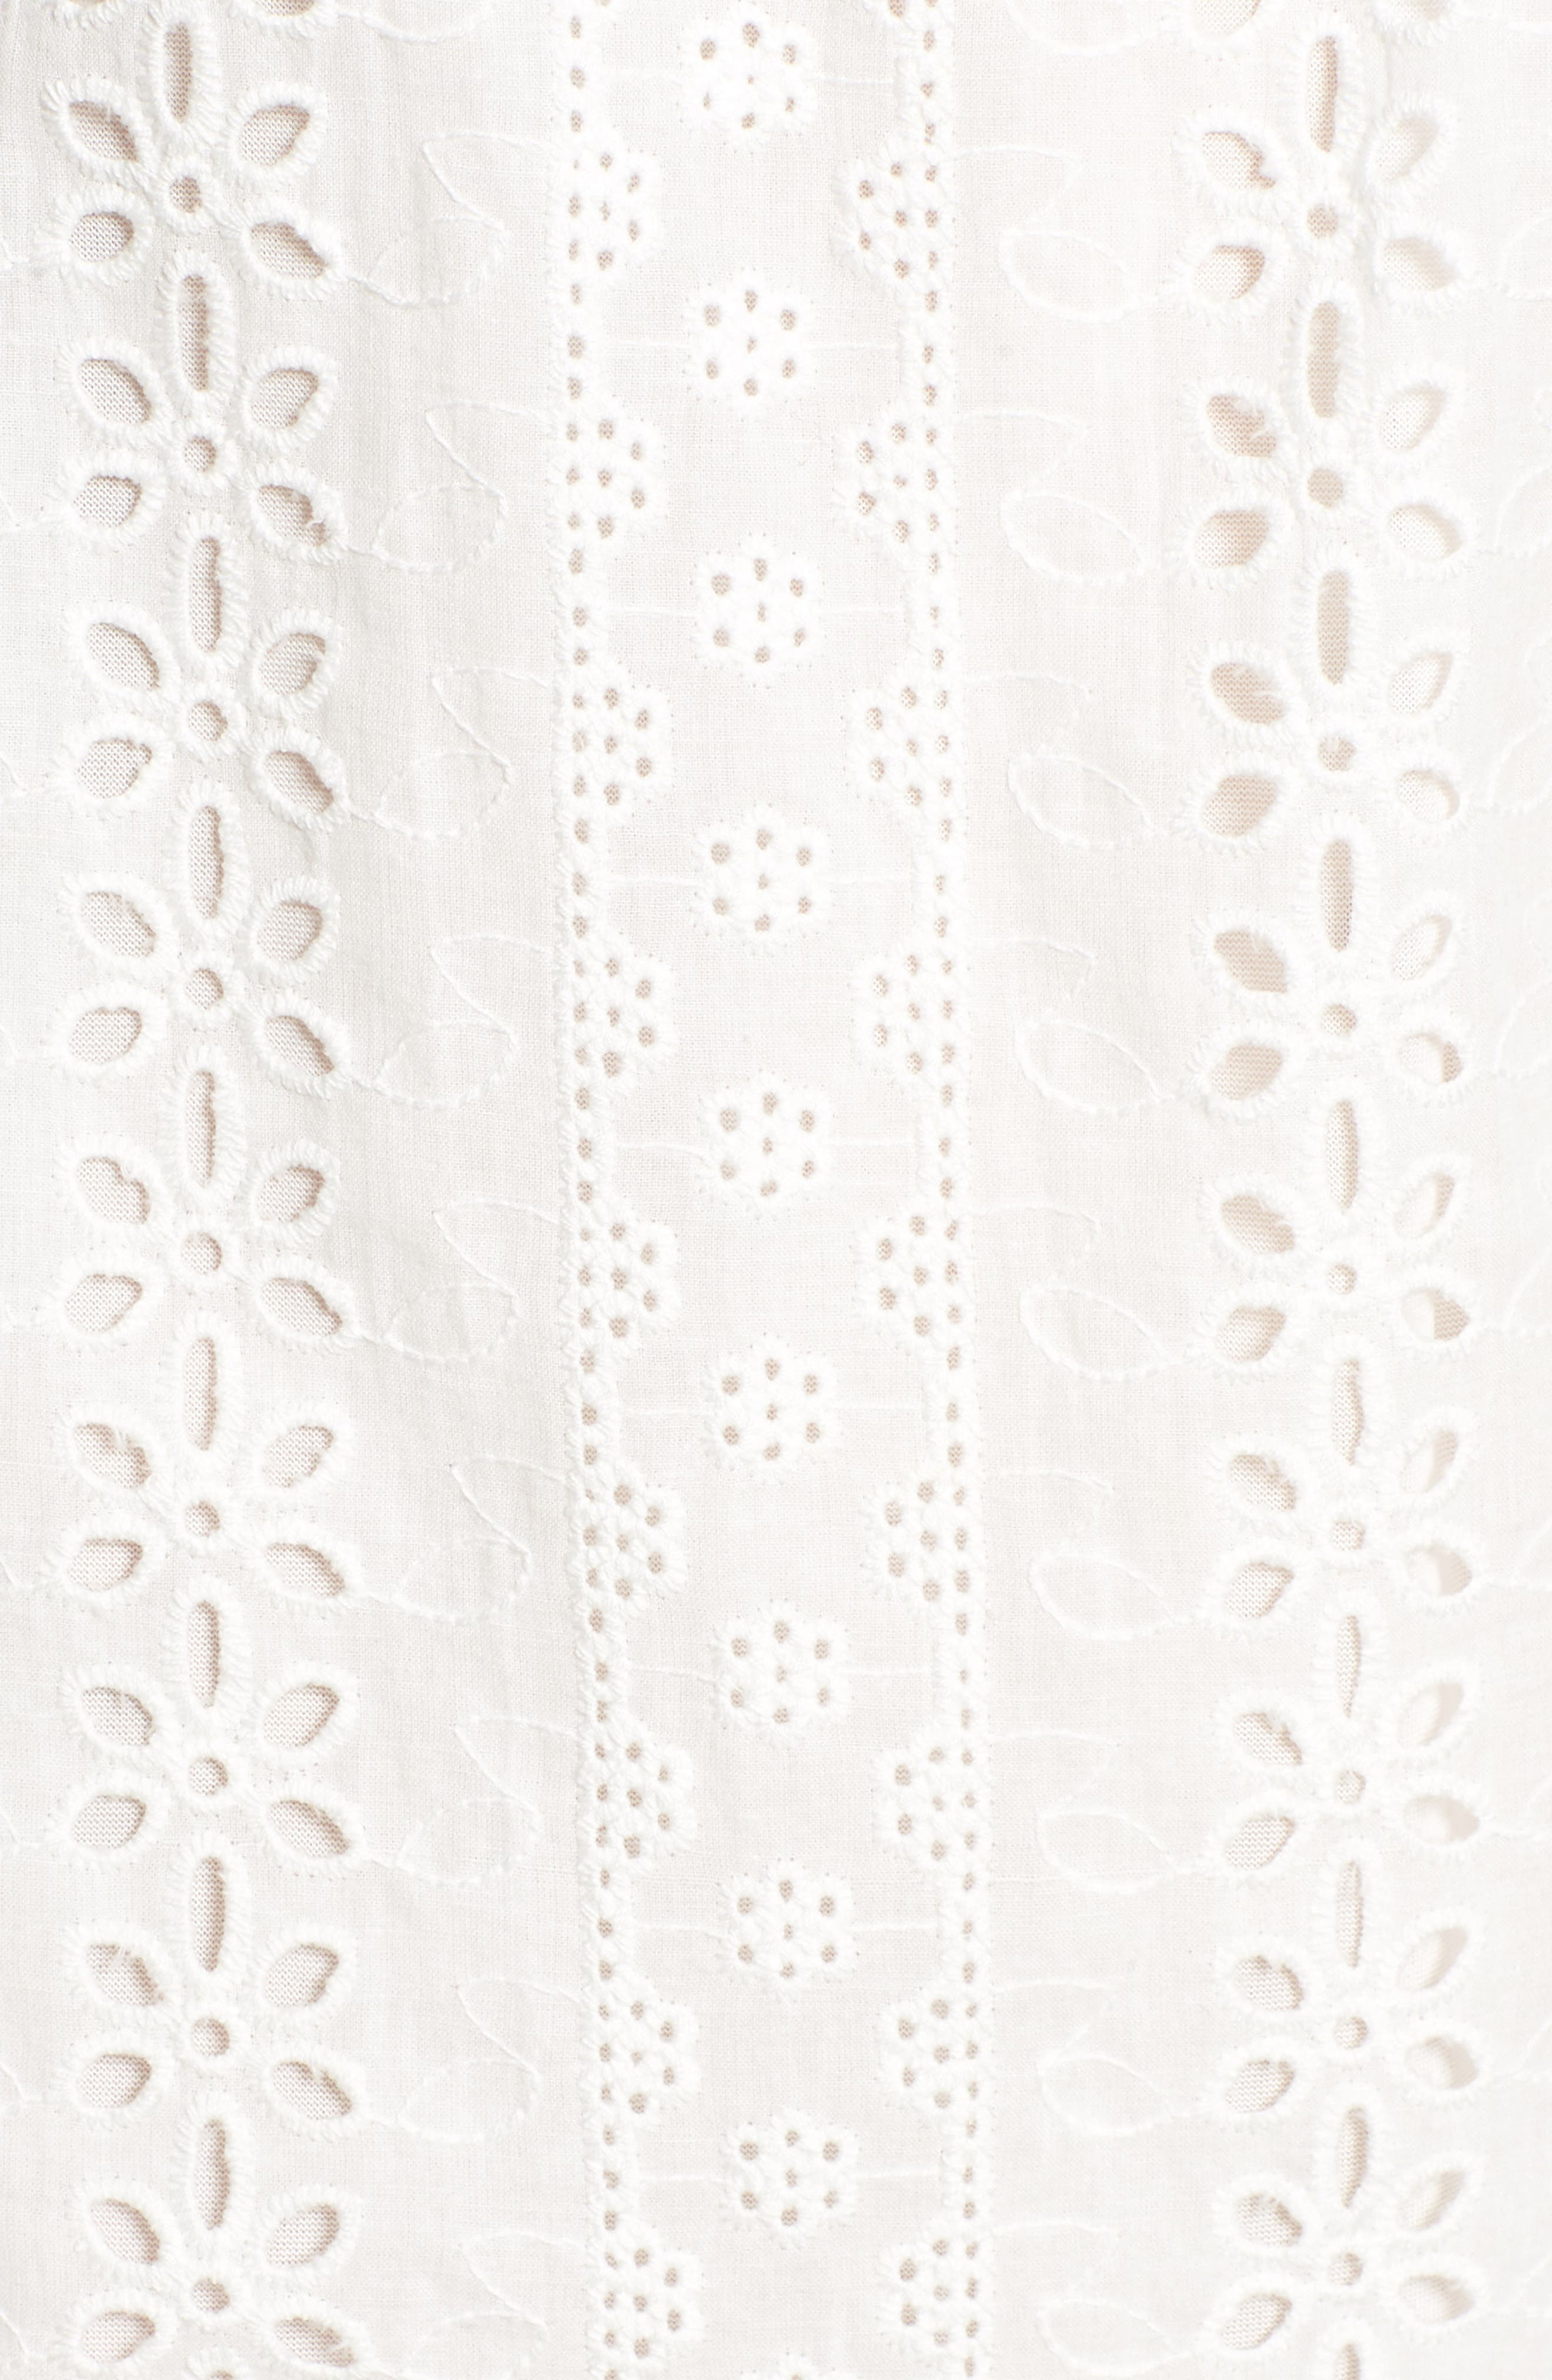 Bishop + Young Eyelet Ruffle Off the Shoulder Dress,                             Alternate thumbnail 6, color,                             White